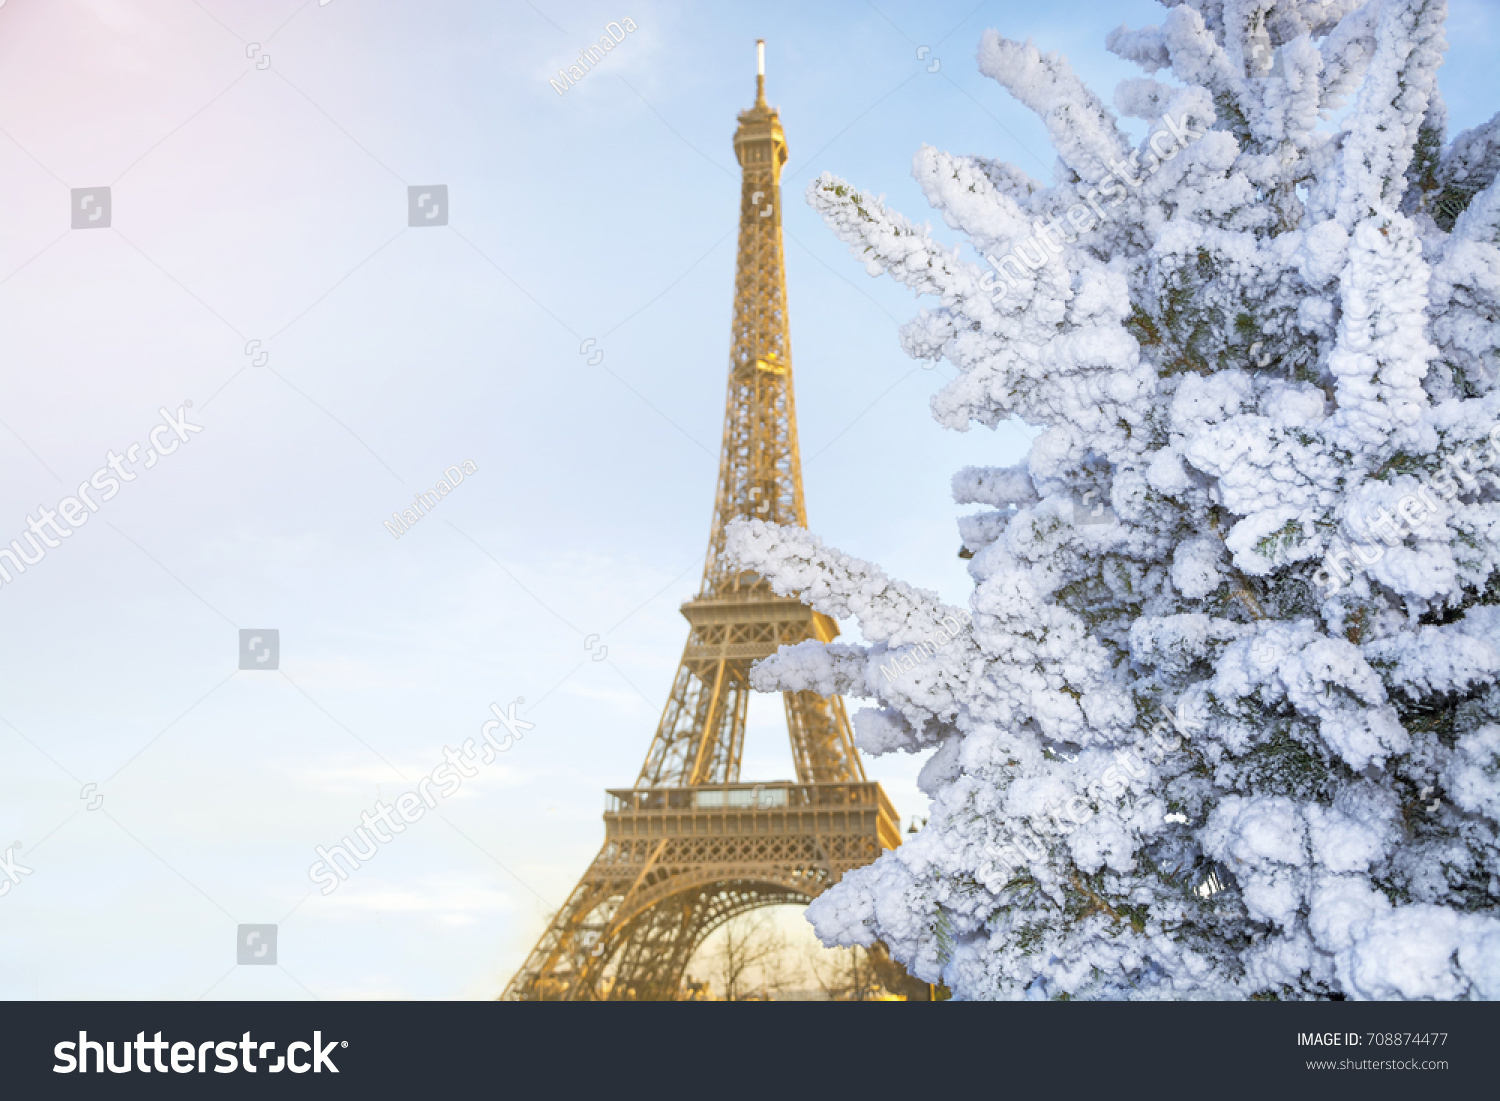 eiffel tower is the main attraction of paris on the background of decorated christmas trees in